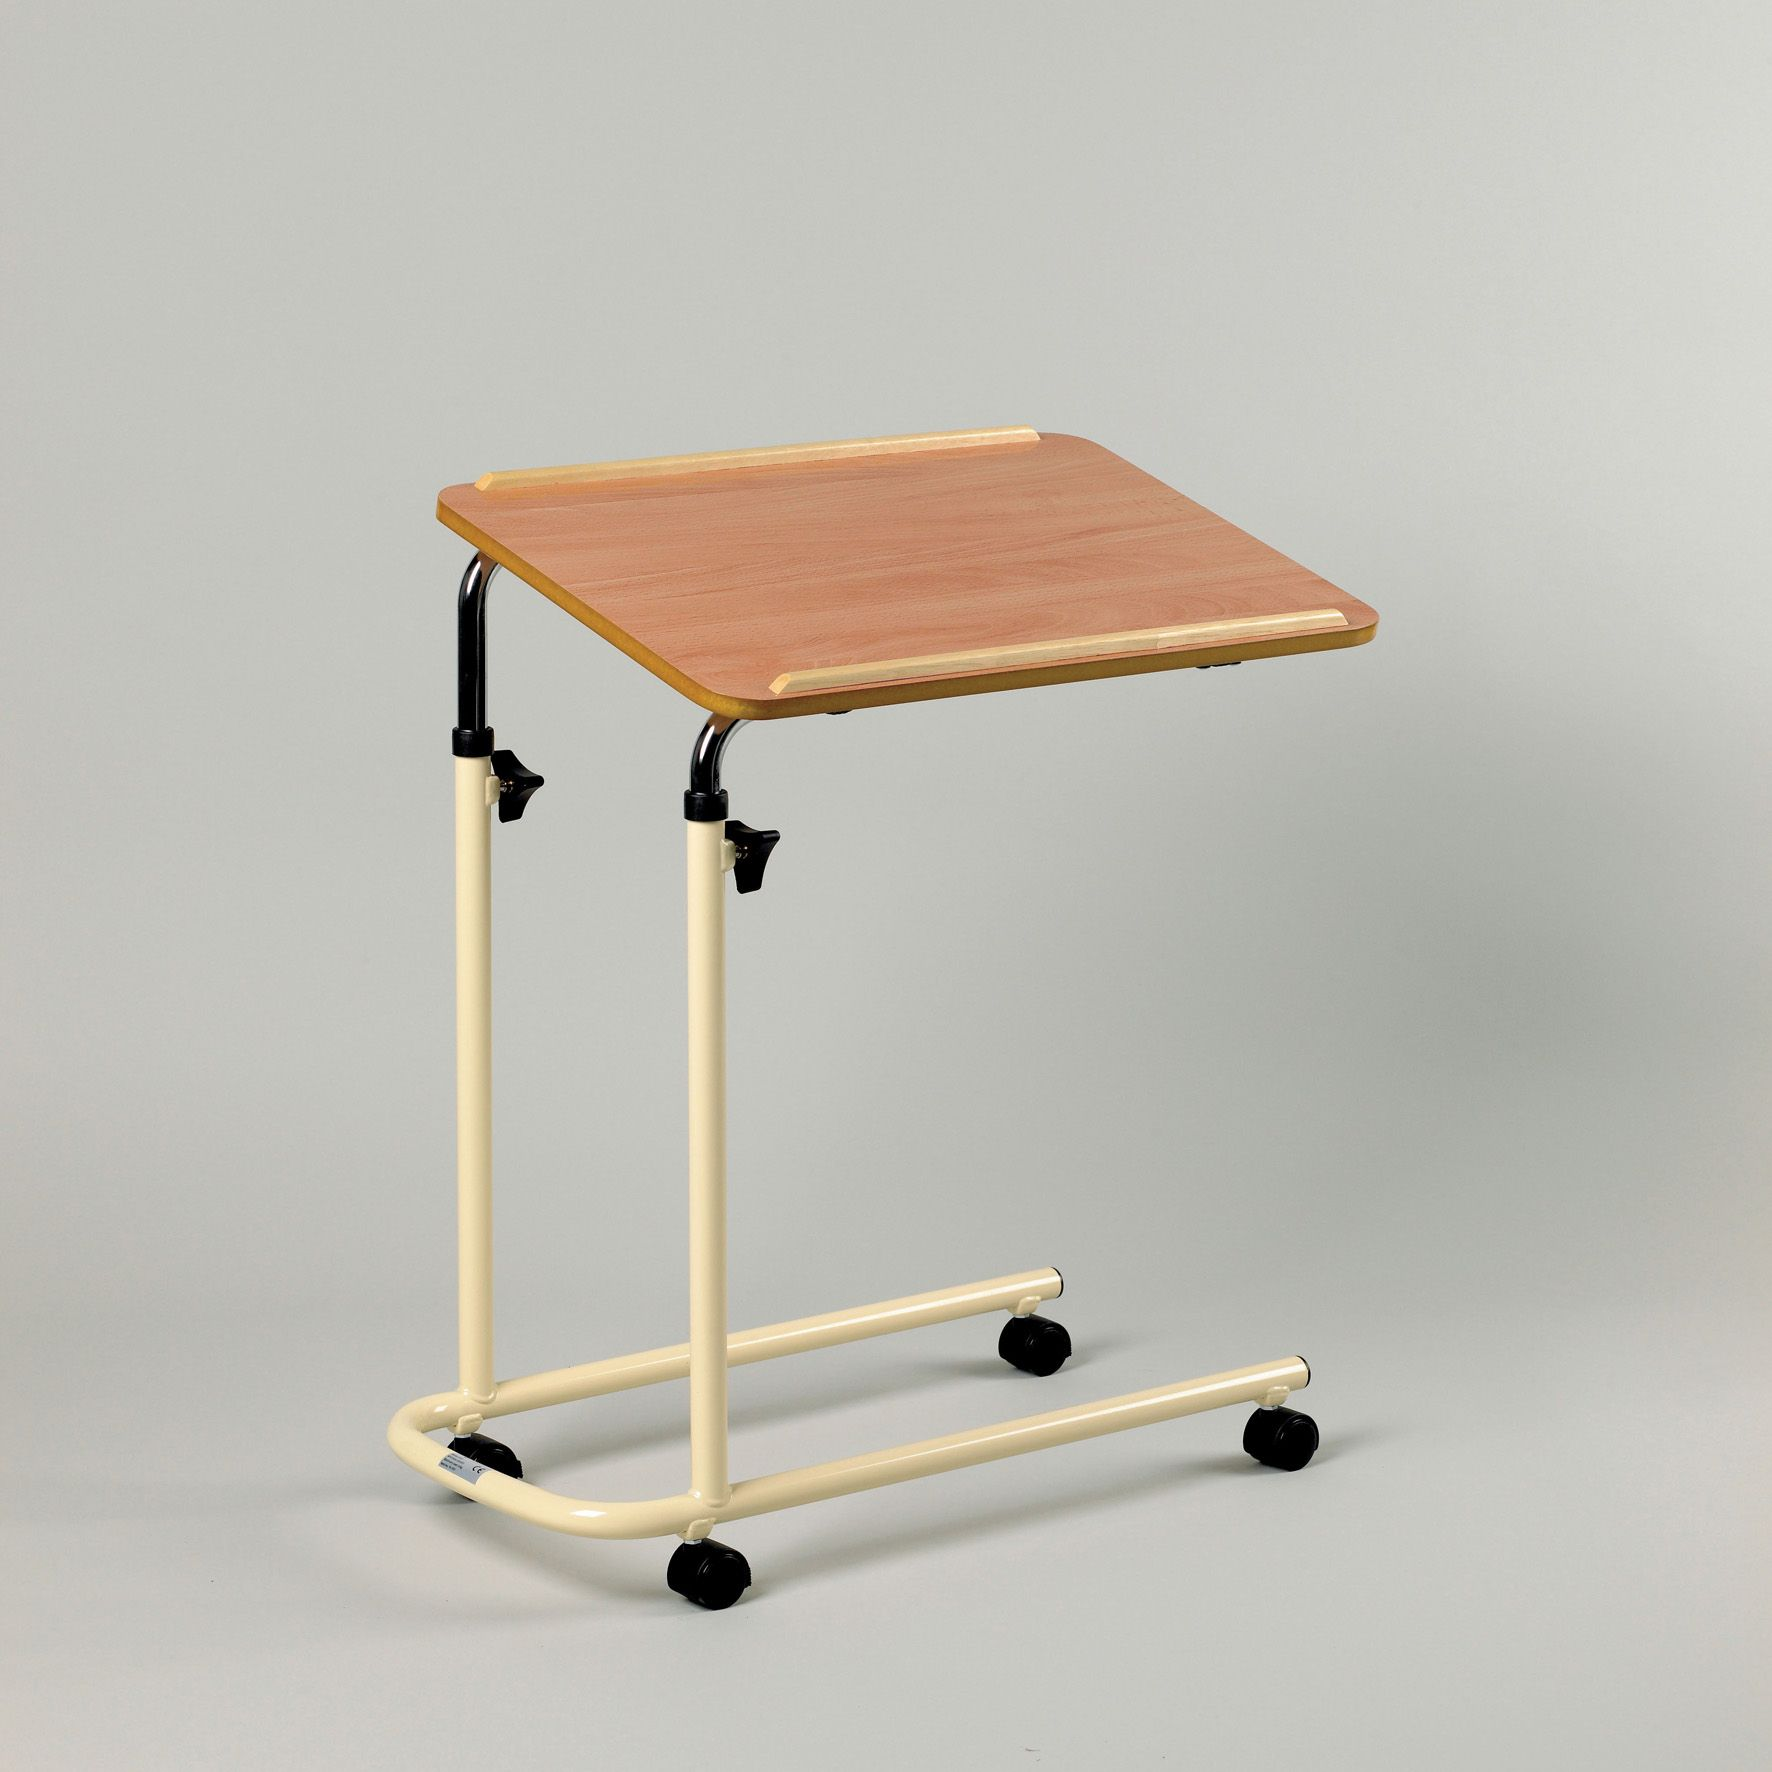 Table On Wheels Tables On Wheels Table Design Ideas